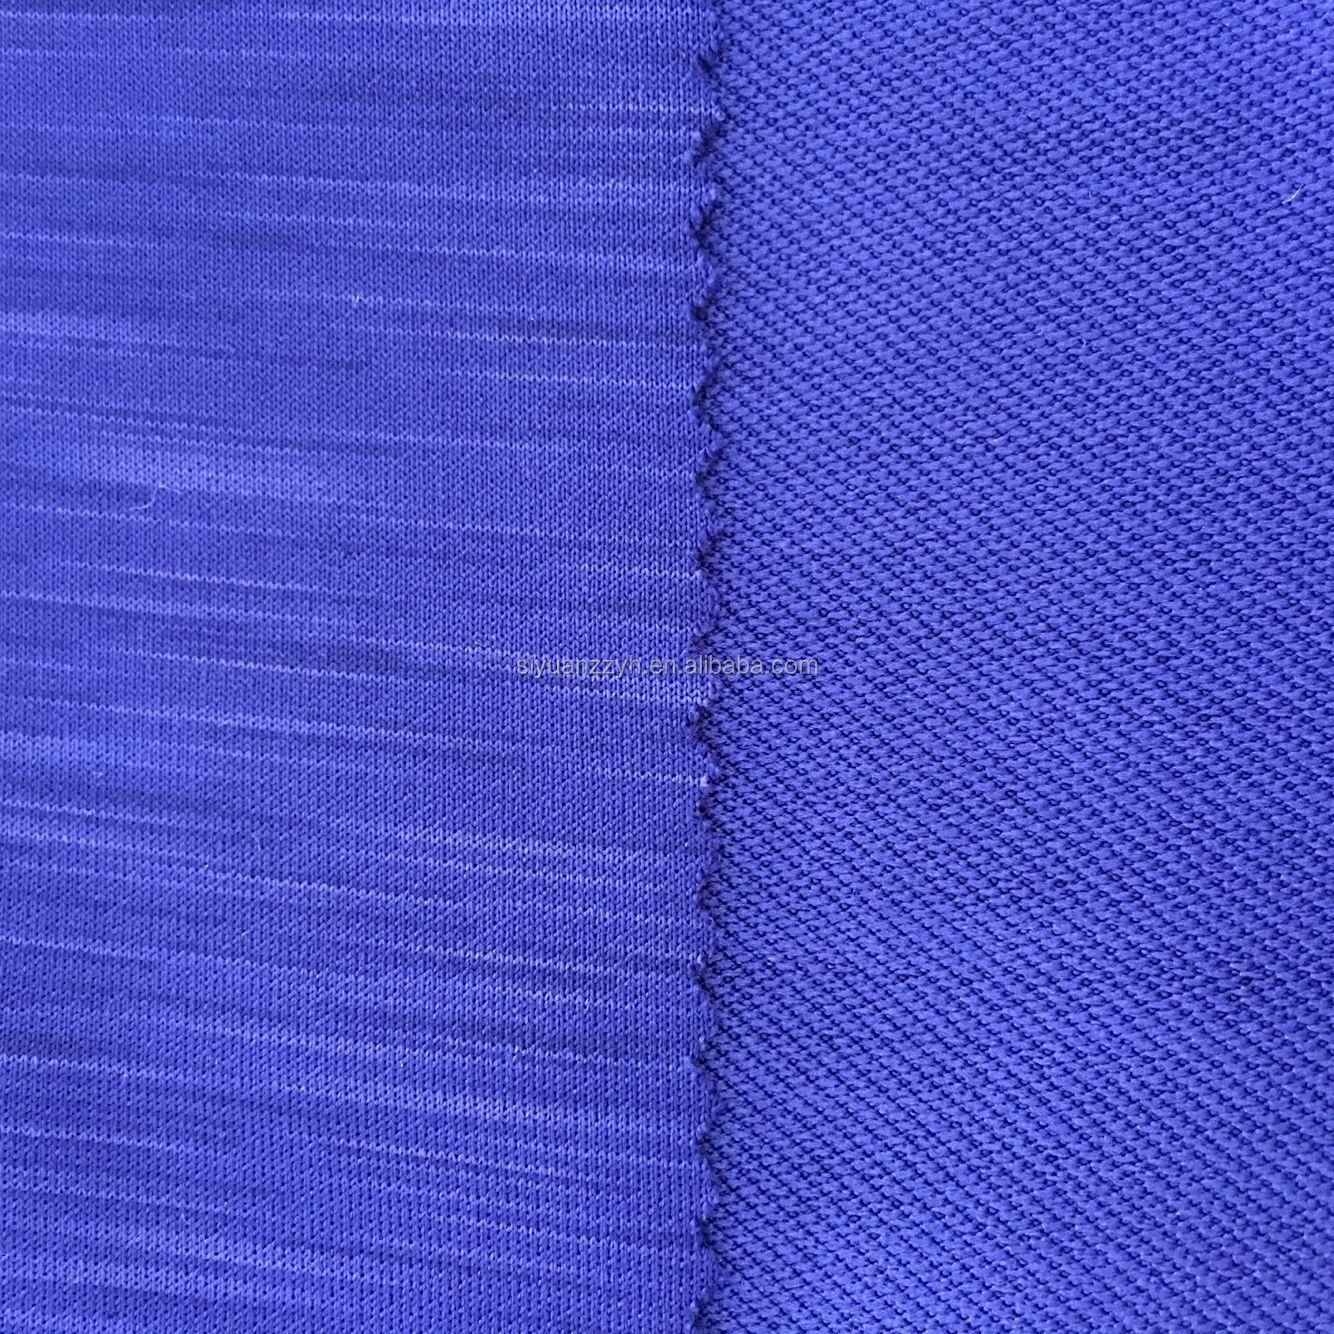 Most Popular High Quality Jersey Knit Fabric Wholesale Polyester Spandex Blend Knitted Fabric